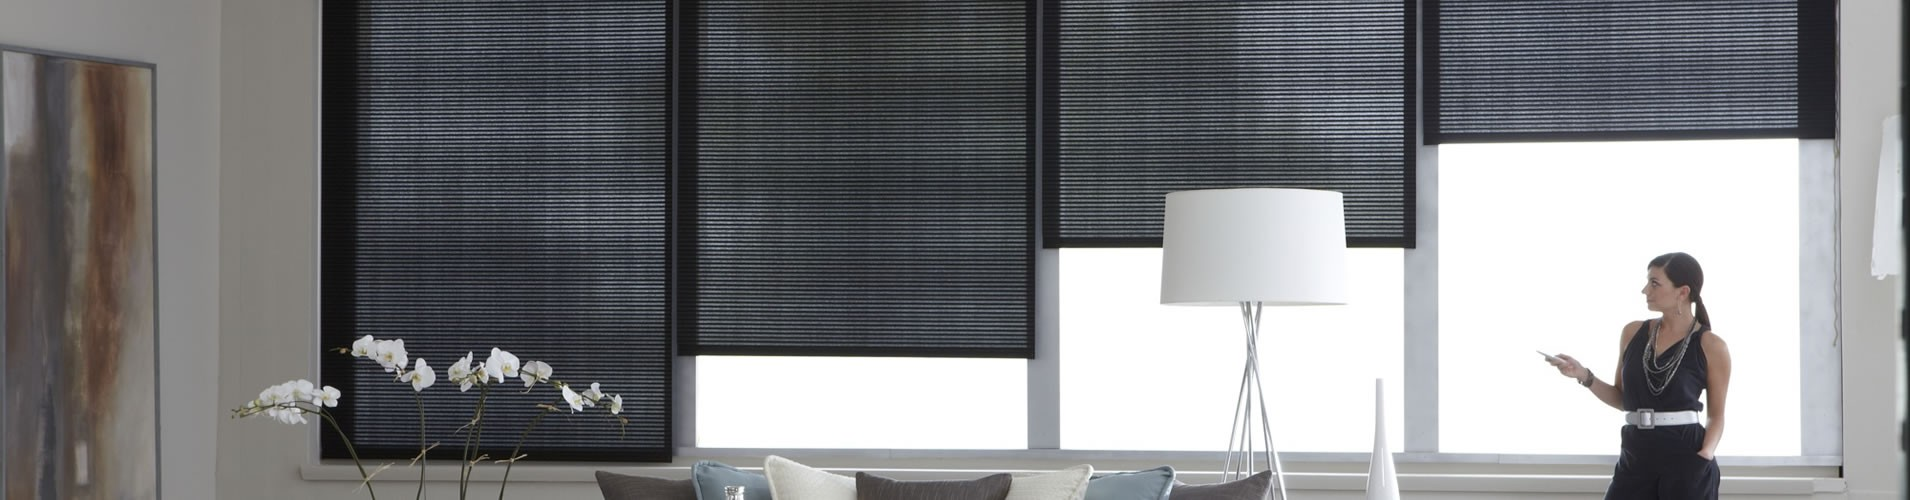 Houston tx window shades motorized roman roller shade for Electric skylight shades motorized blinds